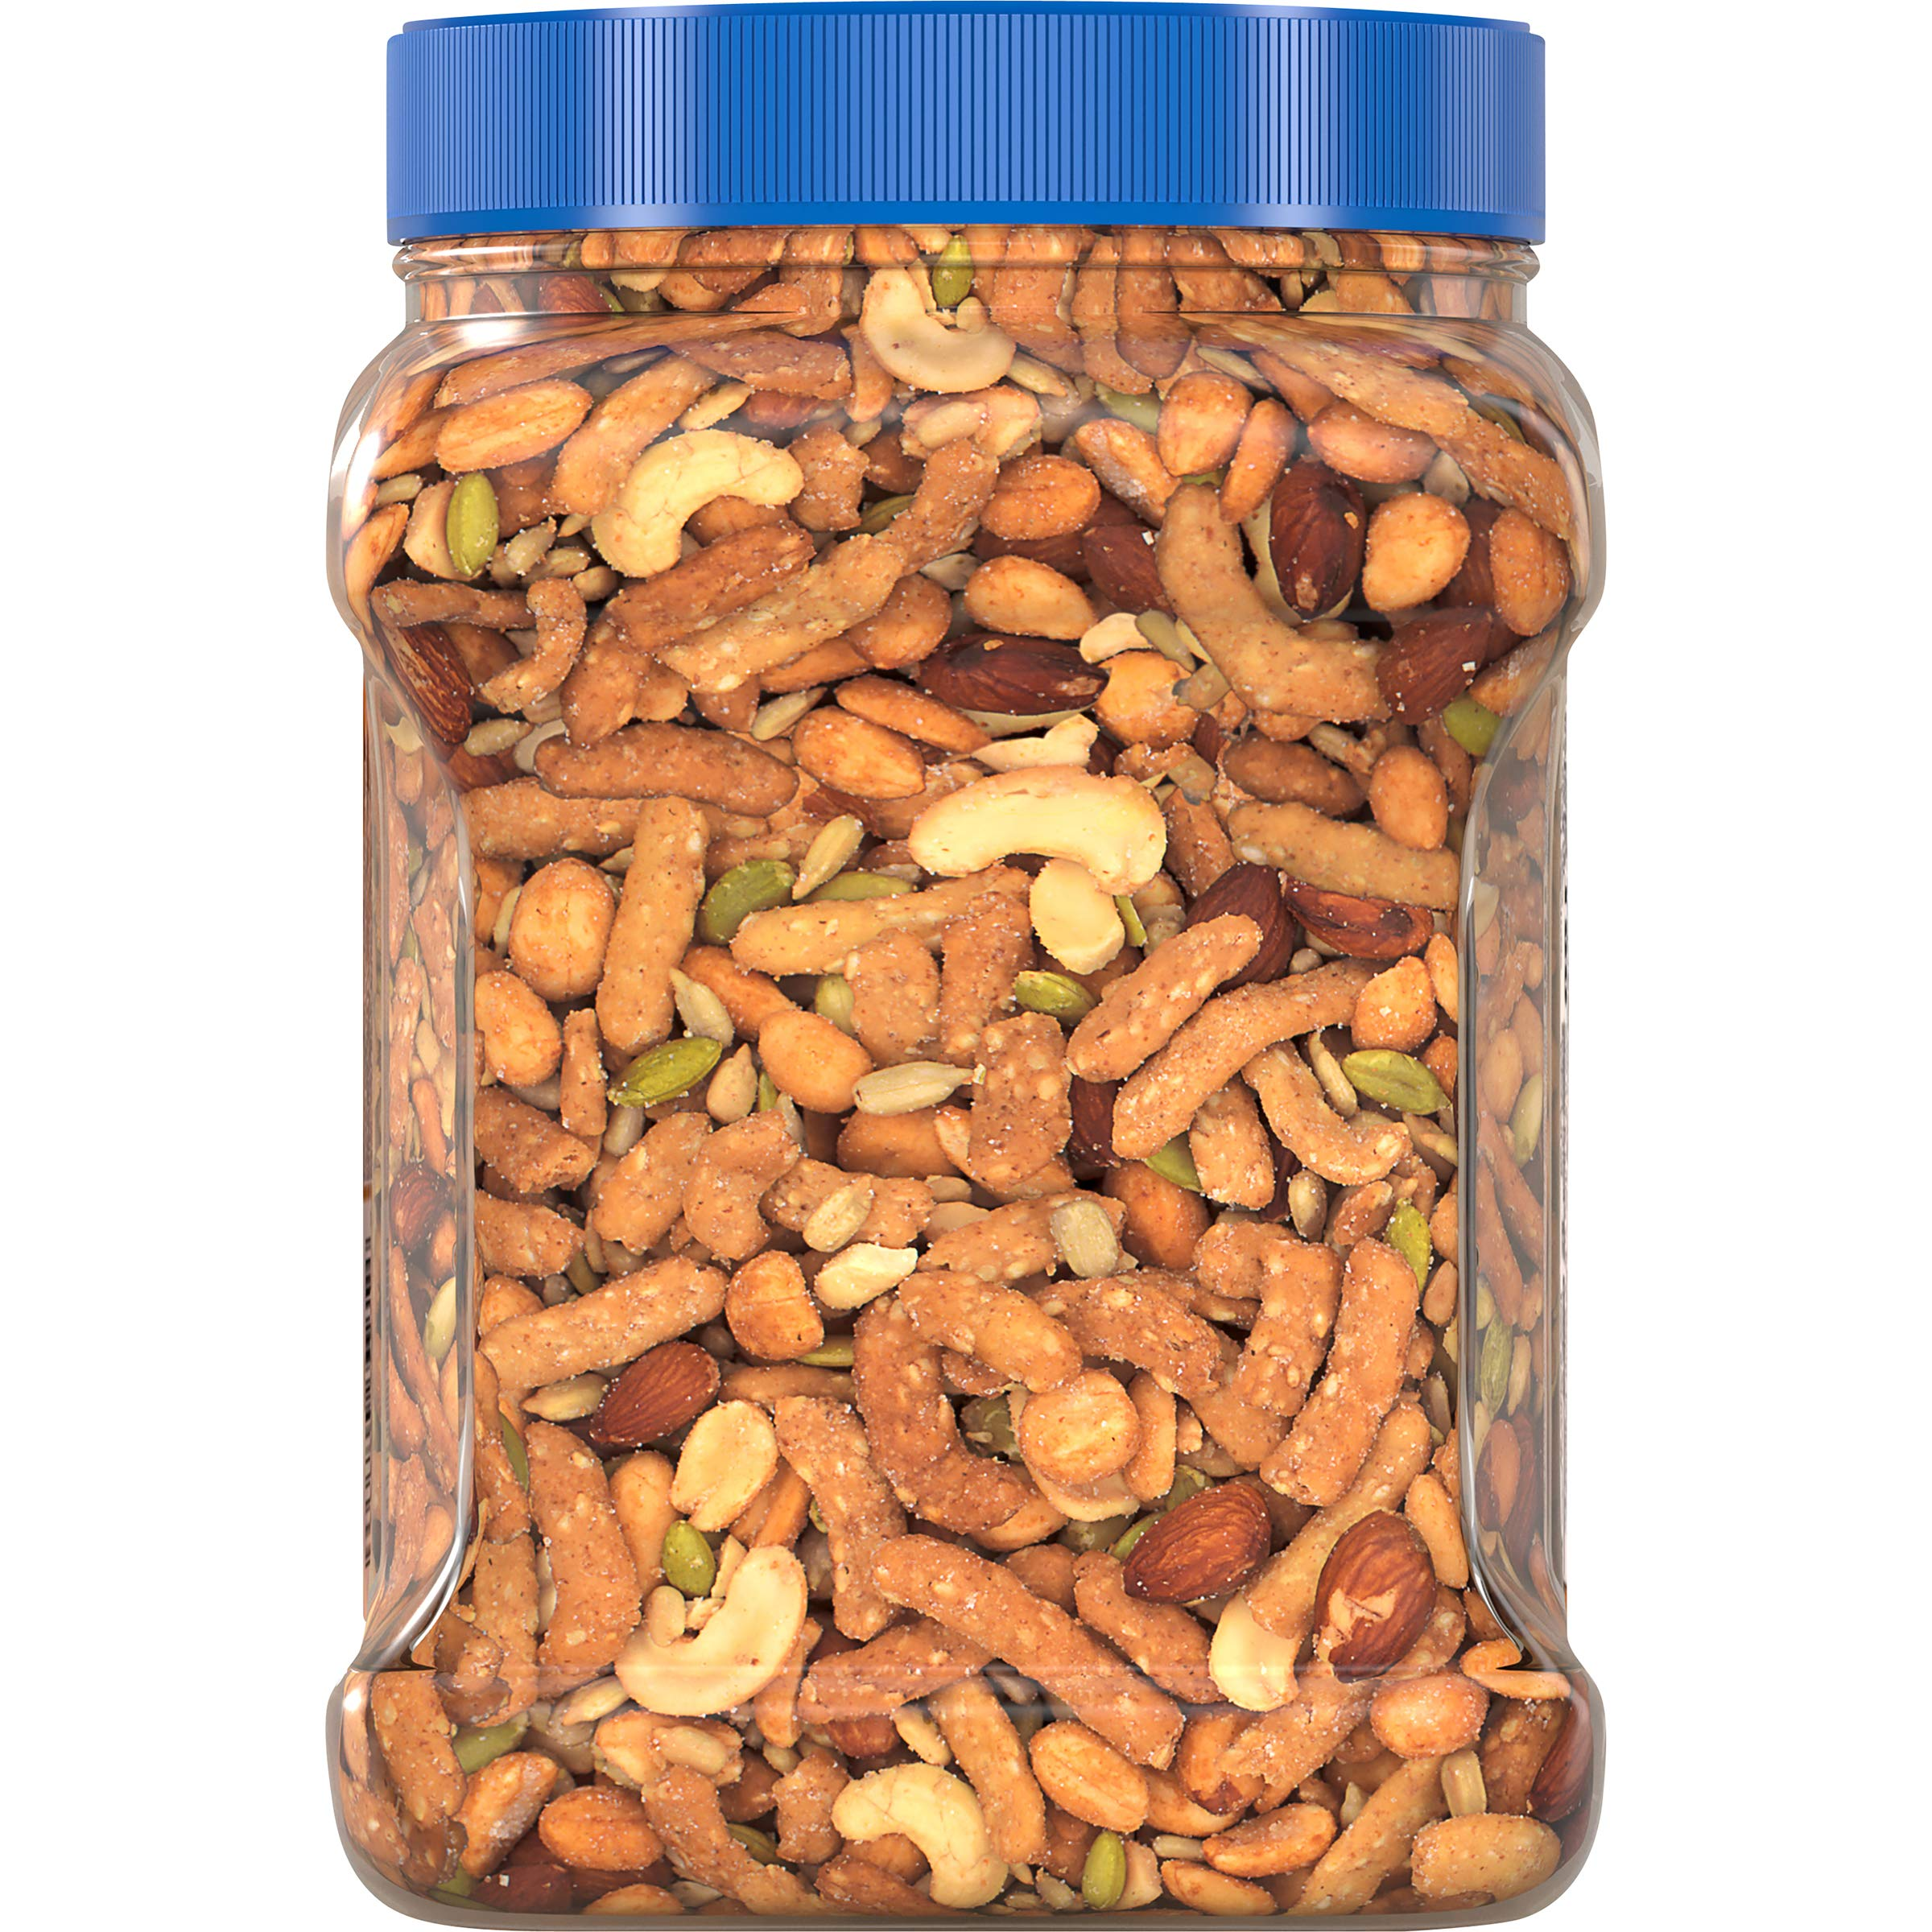 Souther Style Nuts, Honey Roasted Hunter Mix, 23 oz (Pack of 1)